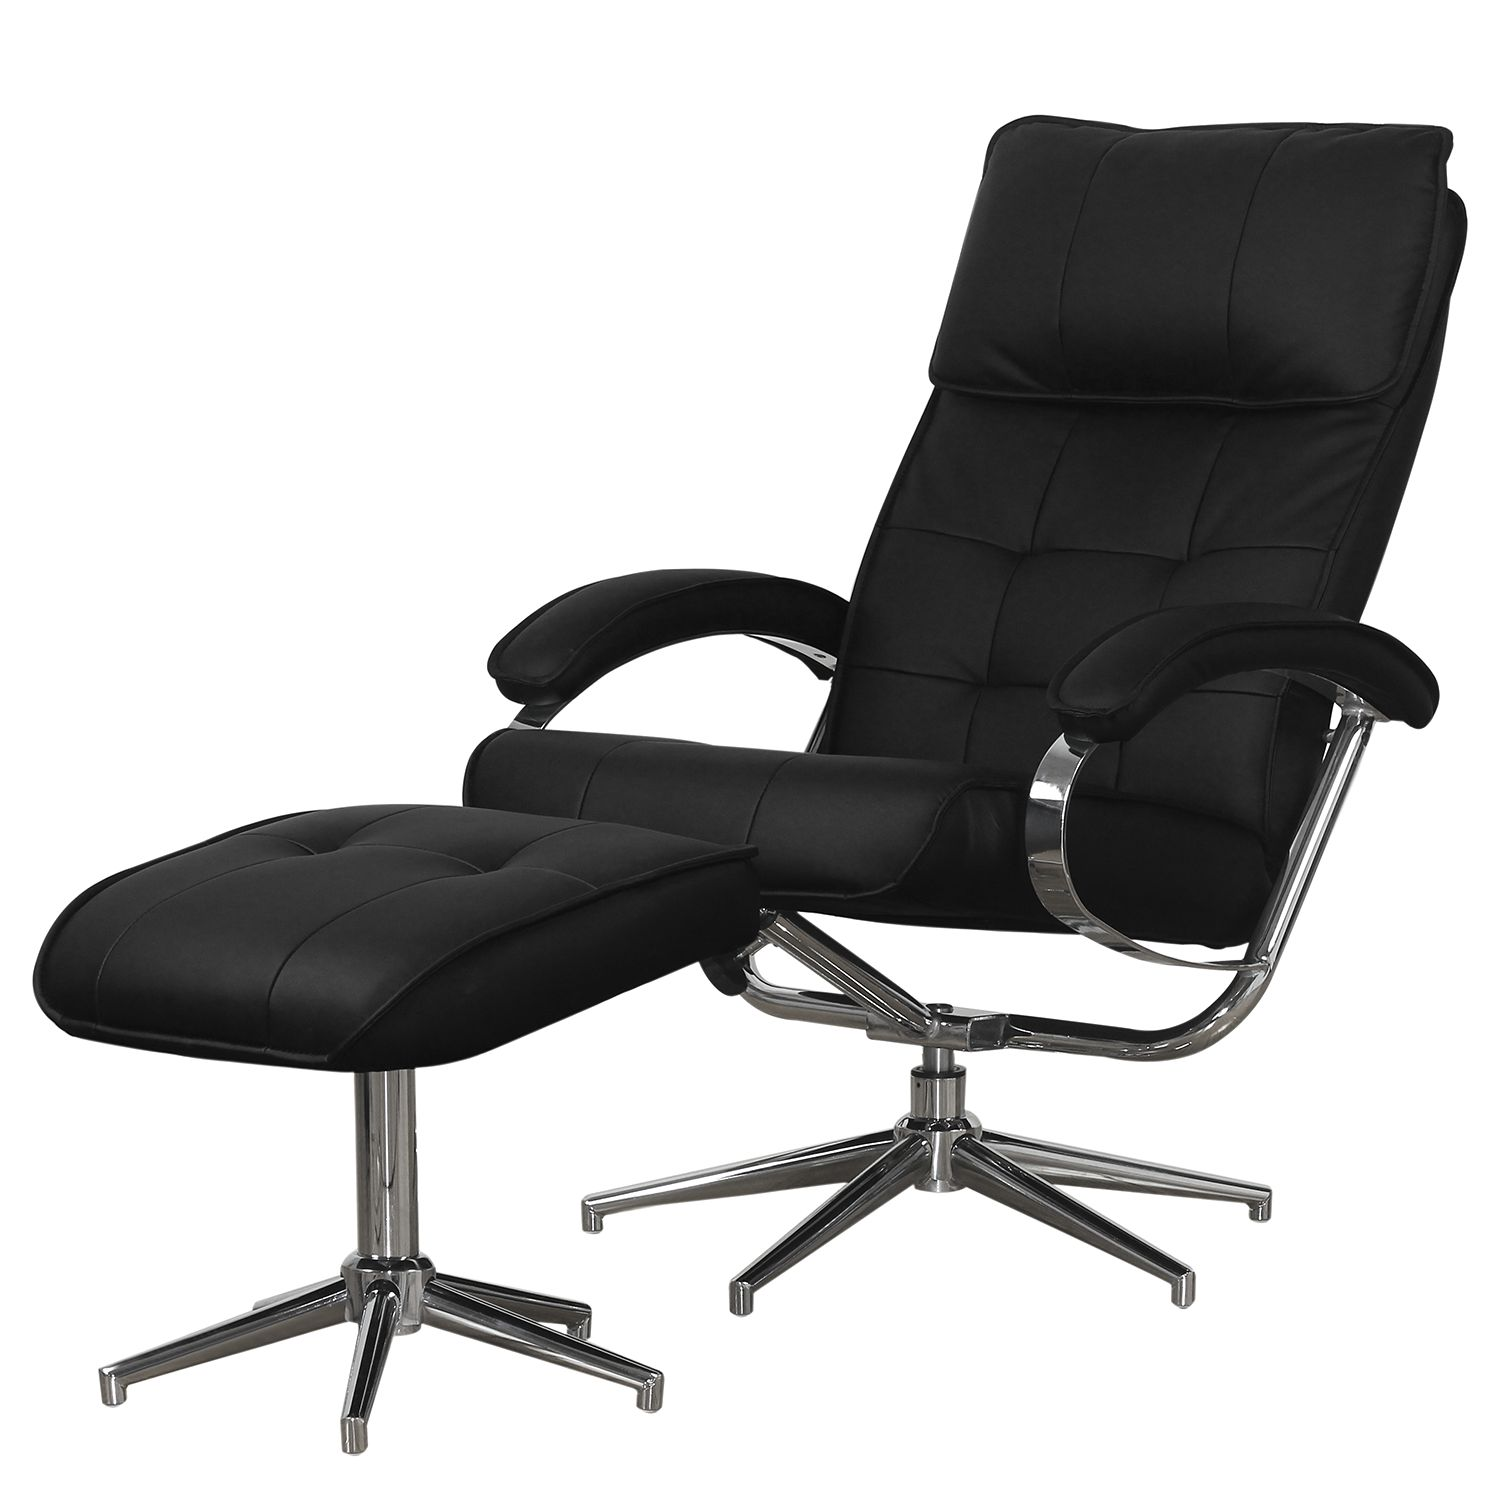 Fauteuil relax Loxton